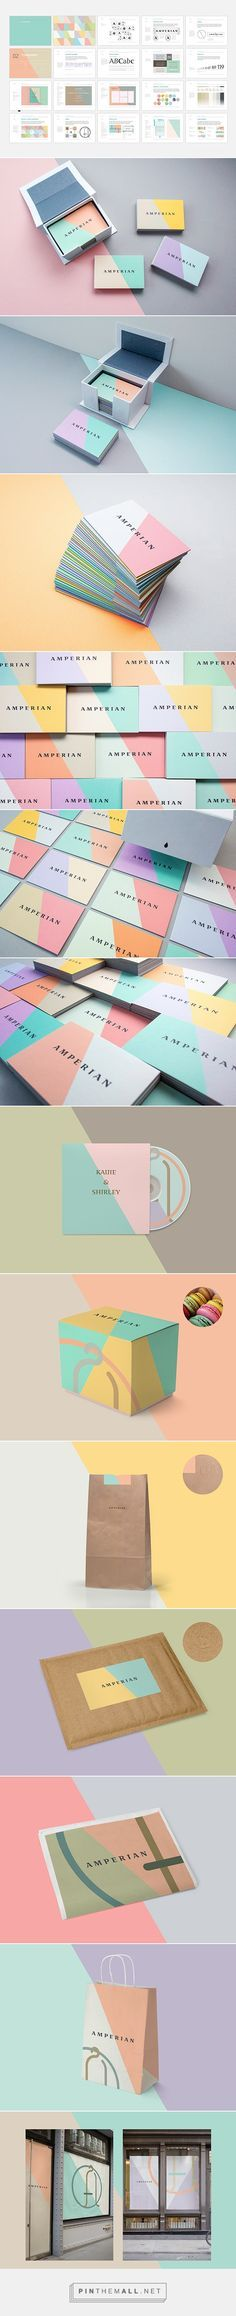 Color blocking #stationary design. Love the business cards and packaging especially. Responsive, modern and beautiful website designs ideas :) To take your passion to another level!